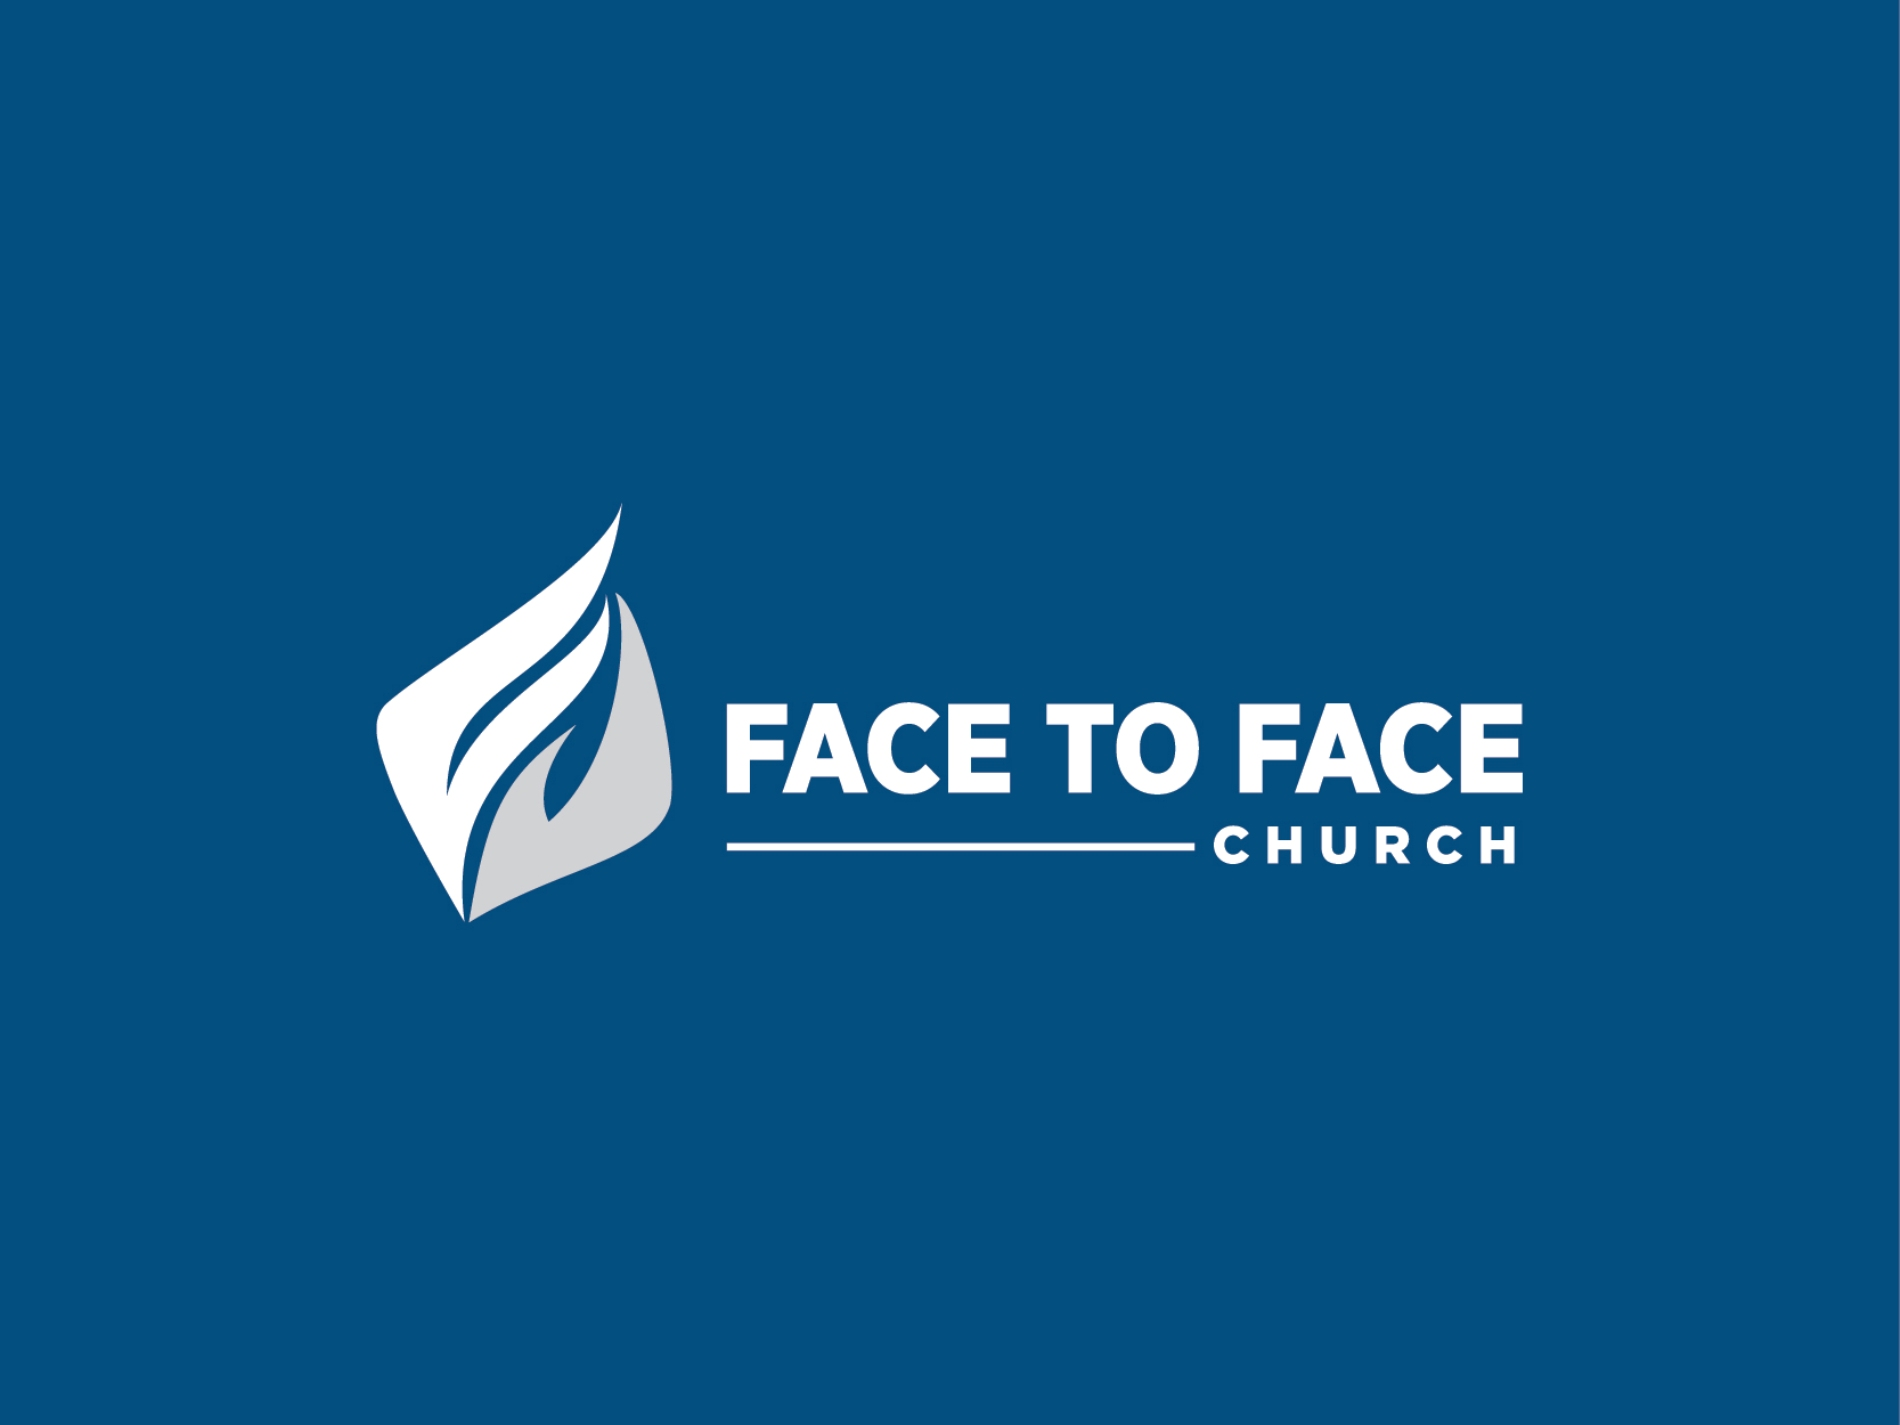 Face to Face Church